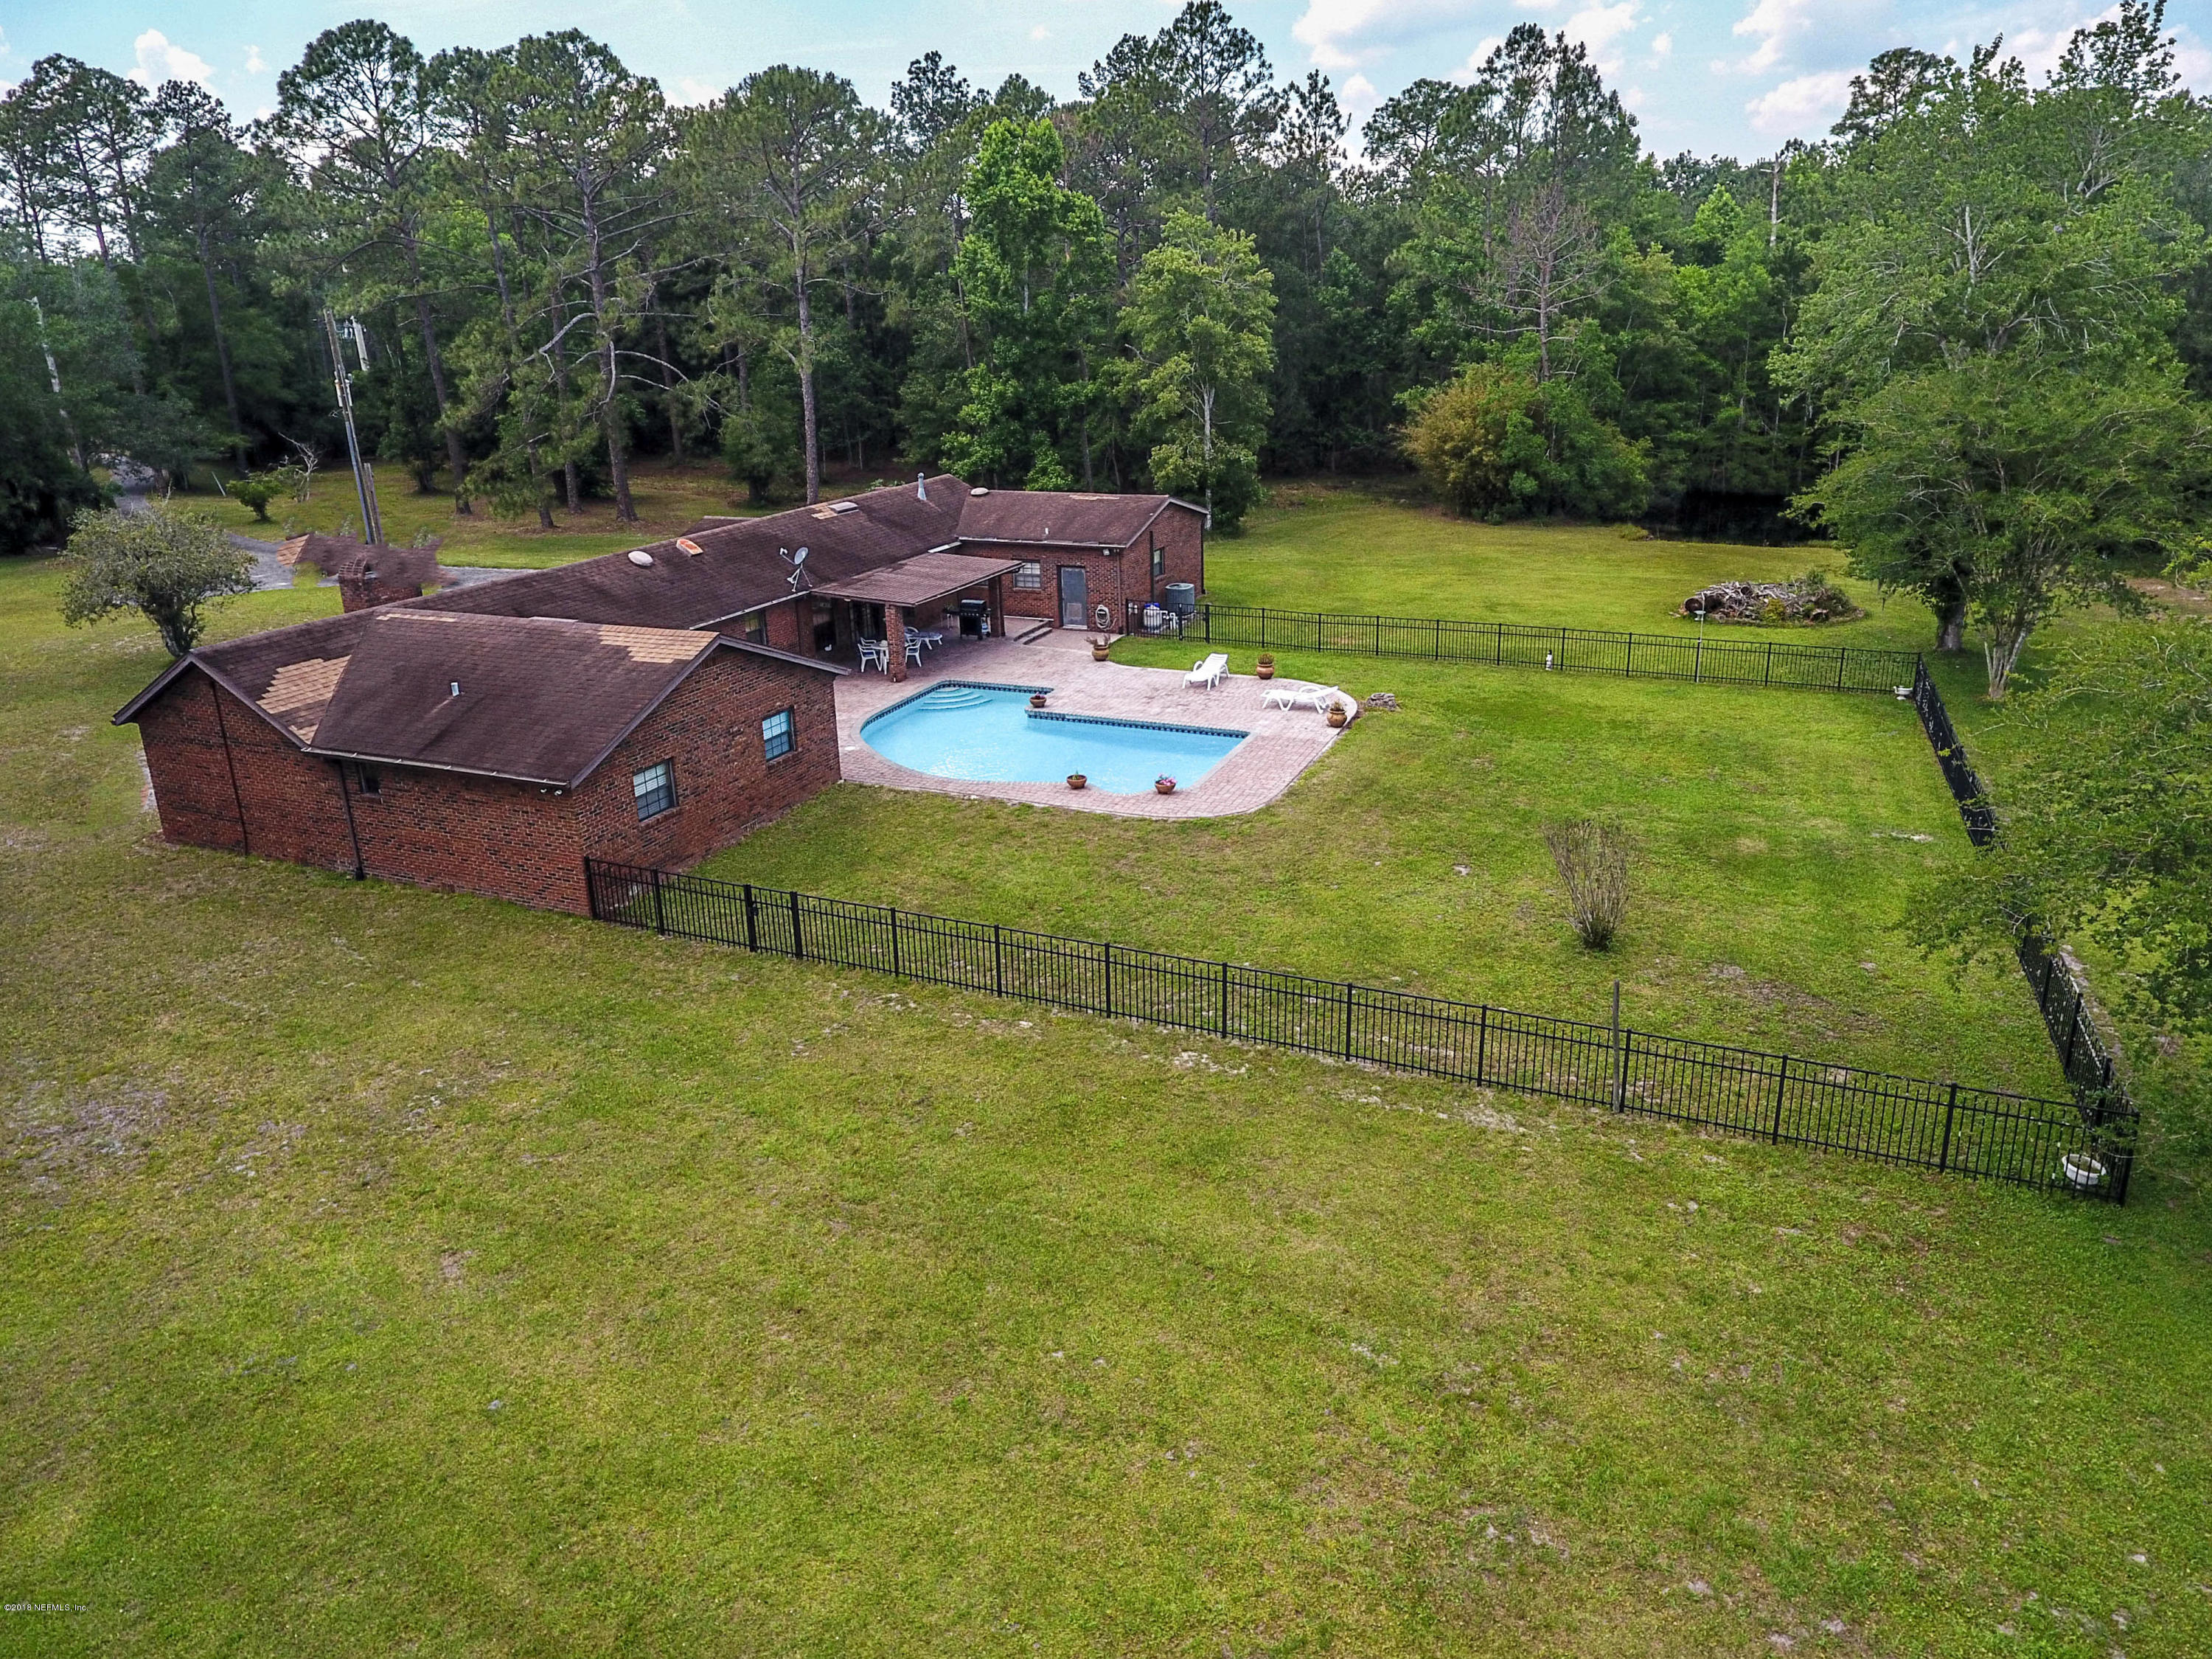 3726 STATE ROAD 16, ST AUGUSTINE, FLORIDA 32092, 3 Bedrooms Bedrooms, ,2 BathroomsBathrooms,Residential,For sale,STATE ROAD 16,936341